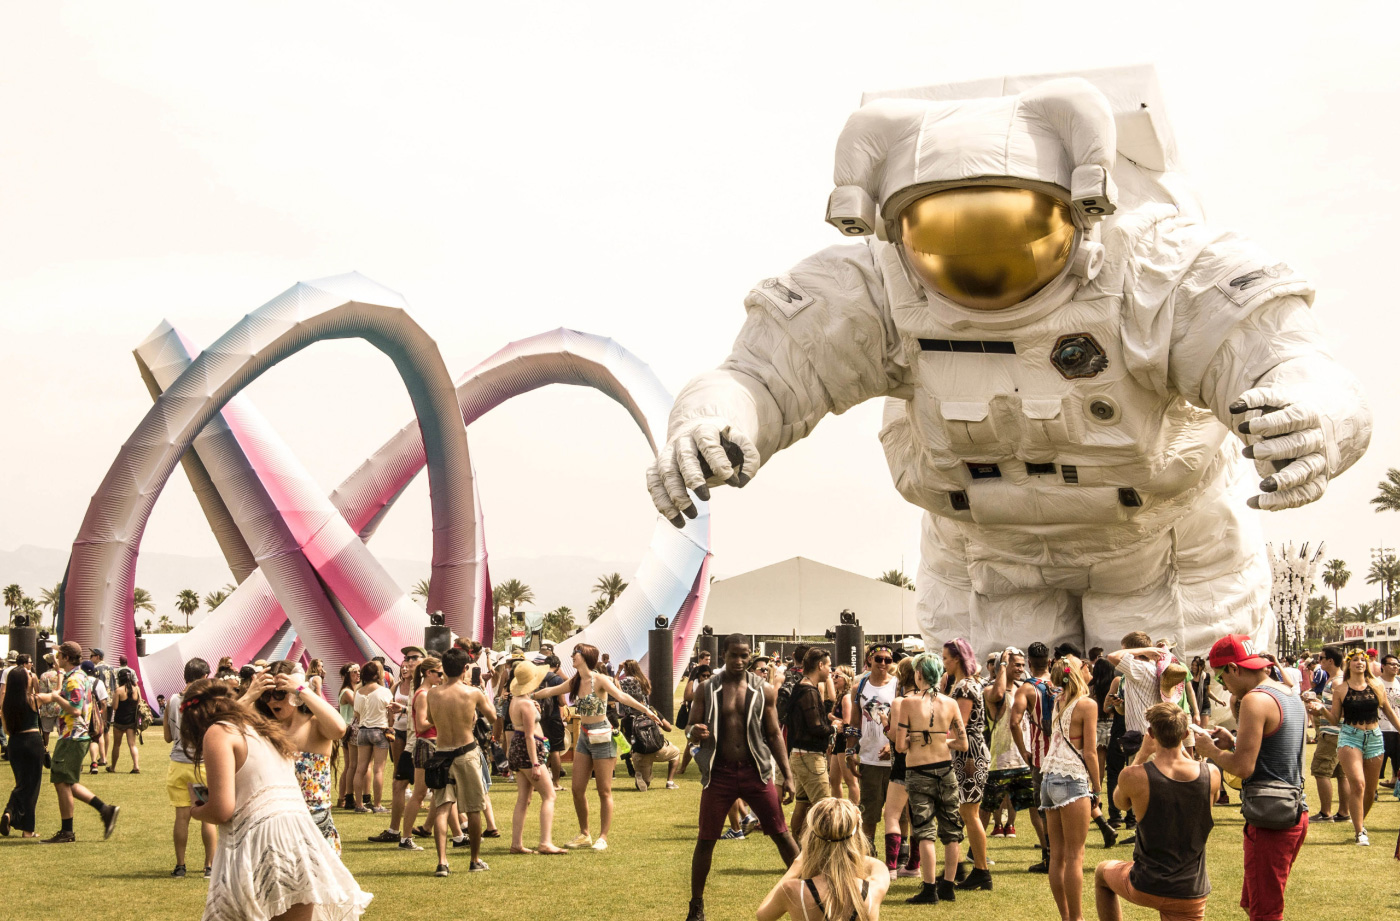 A giant inflatable astronaut at Coachella